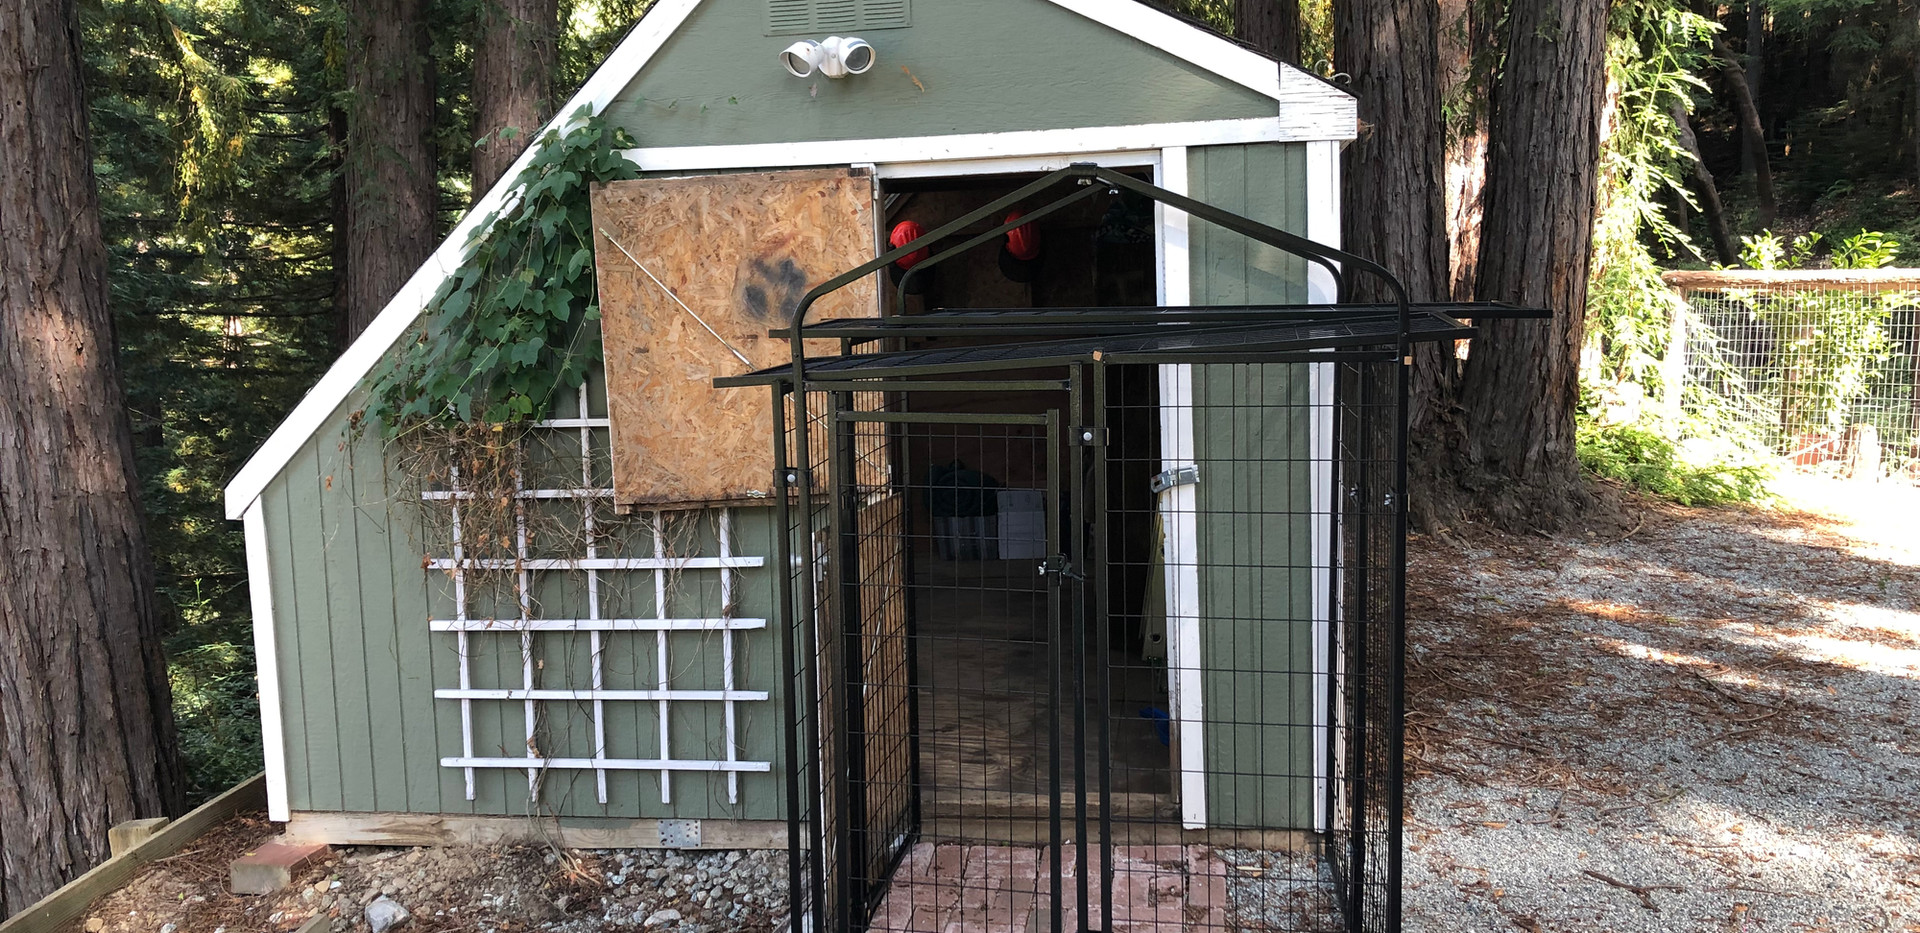 Shed with dog kennel attached